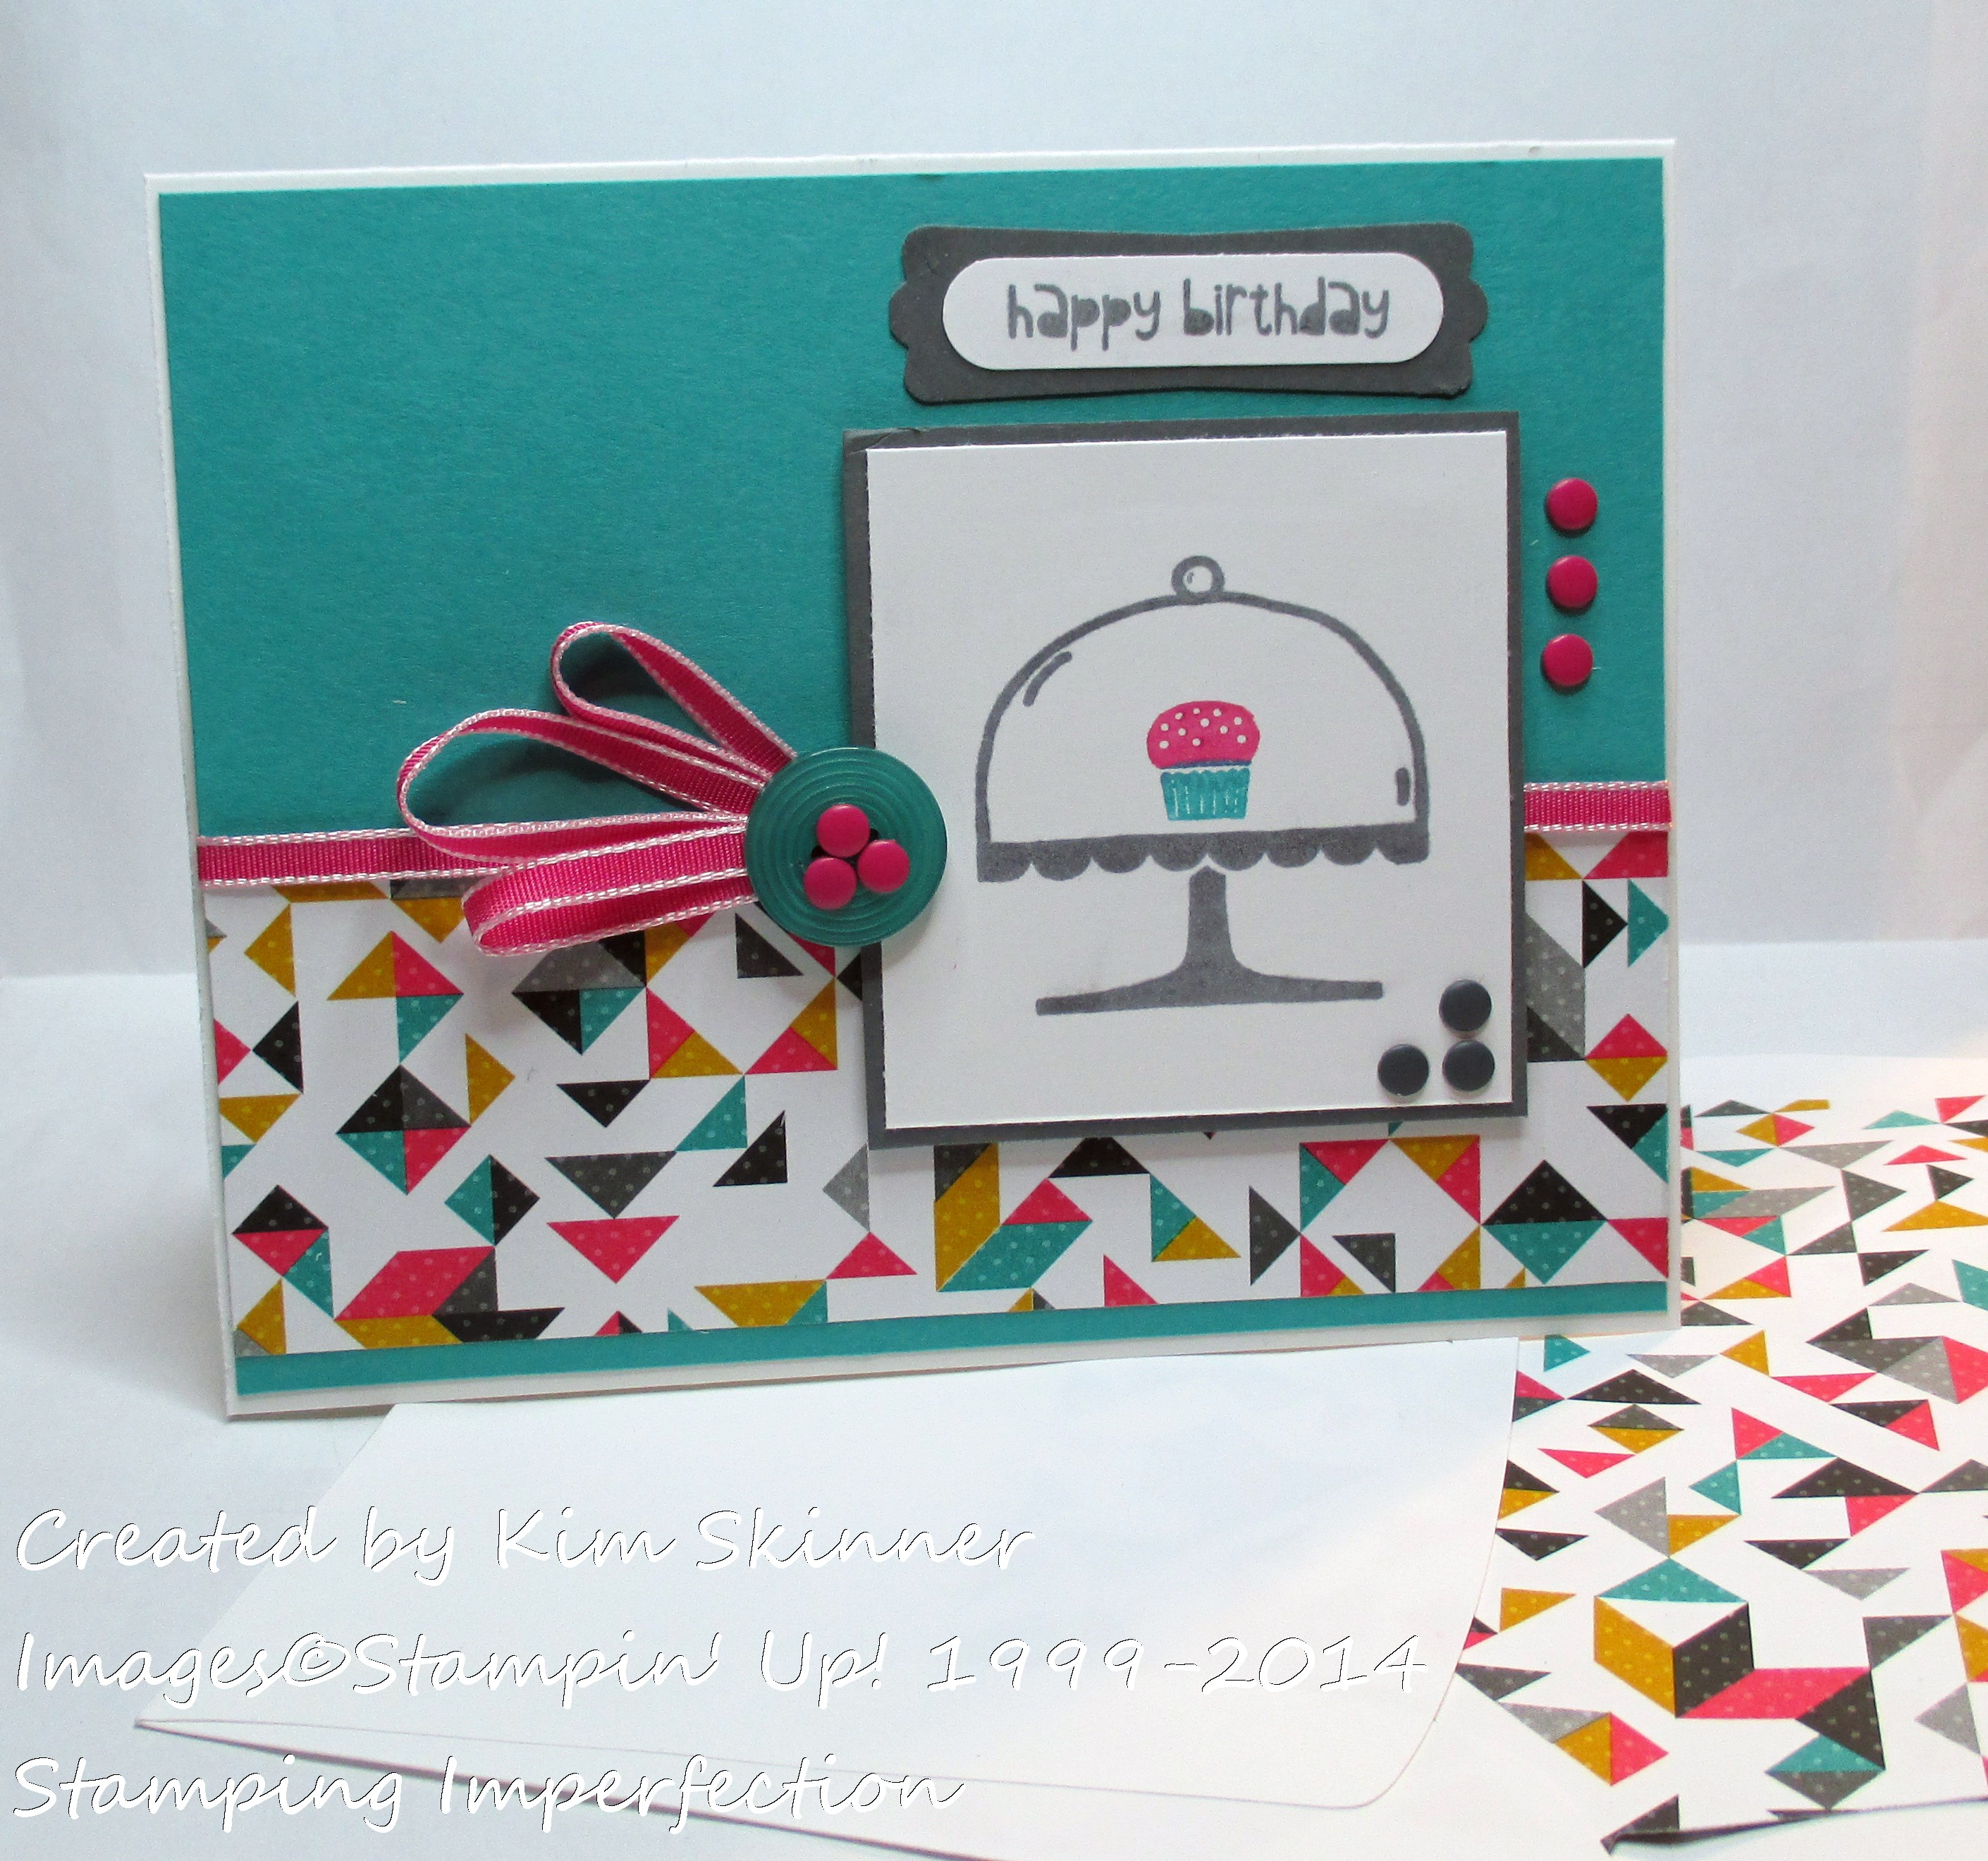 stamping imperfection colorful birthday